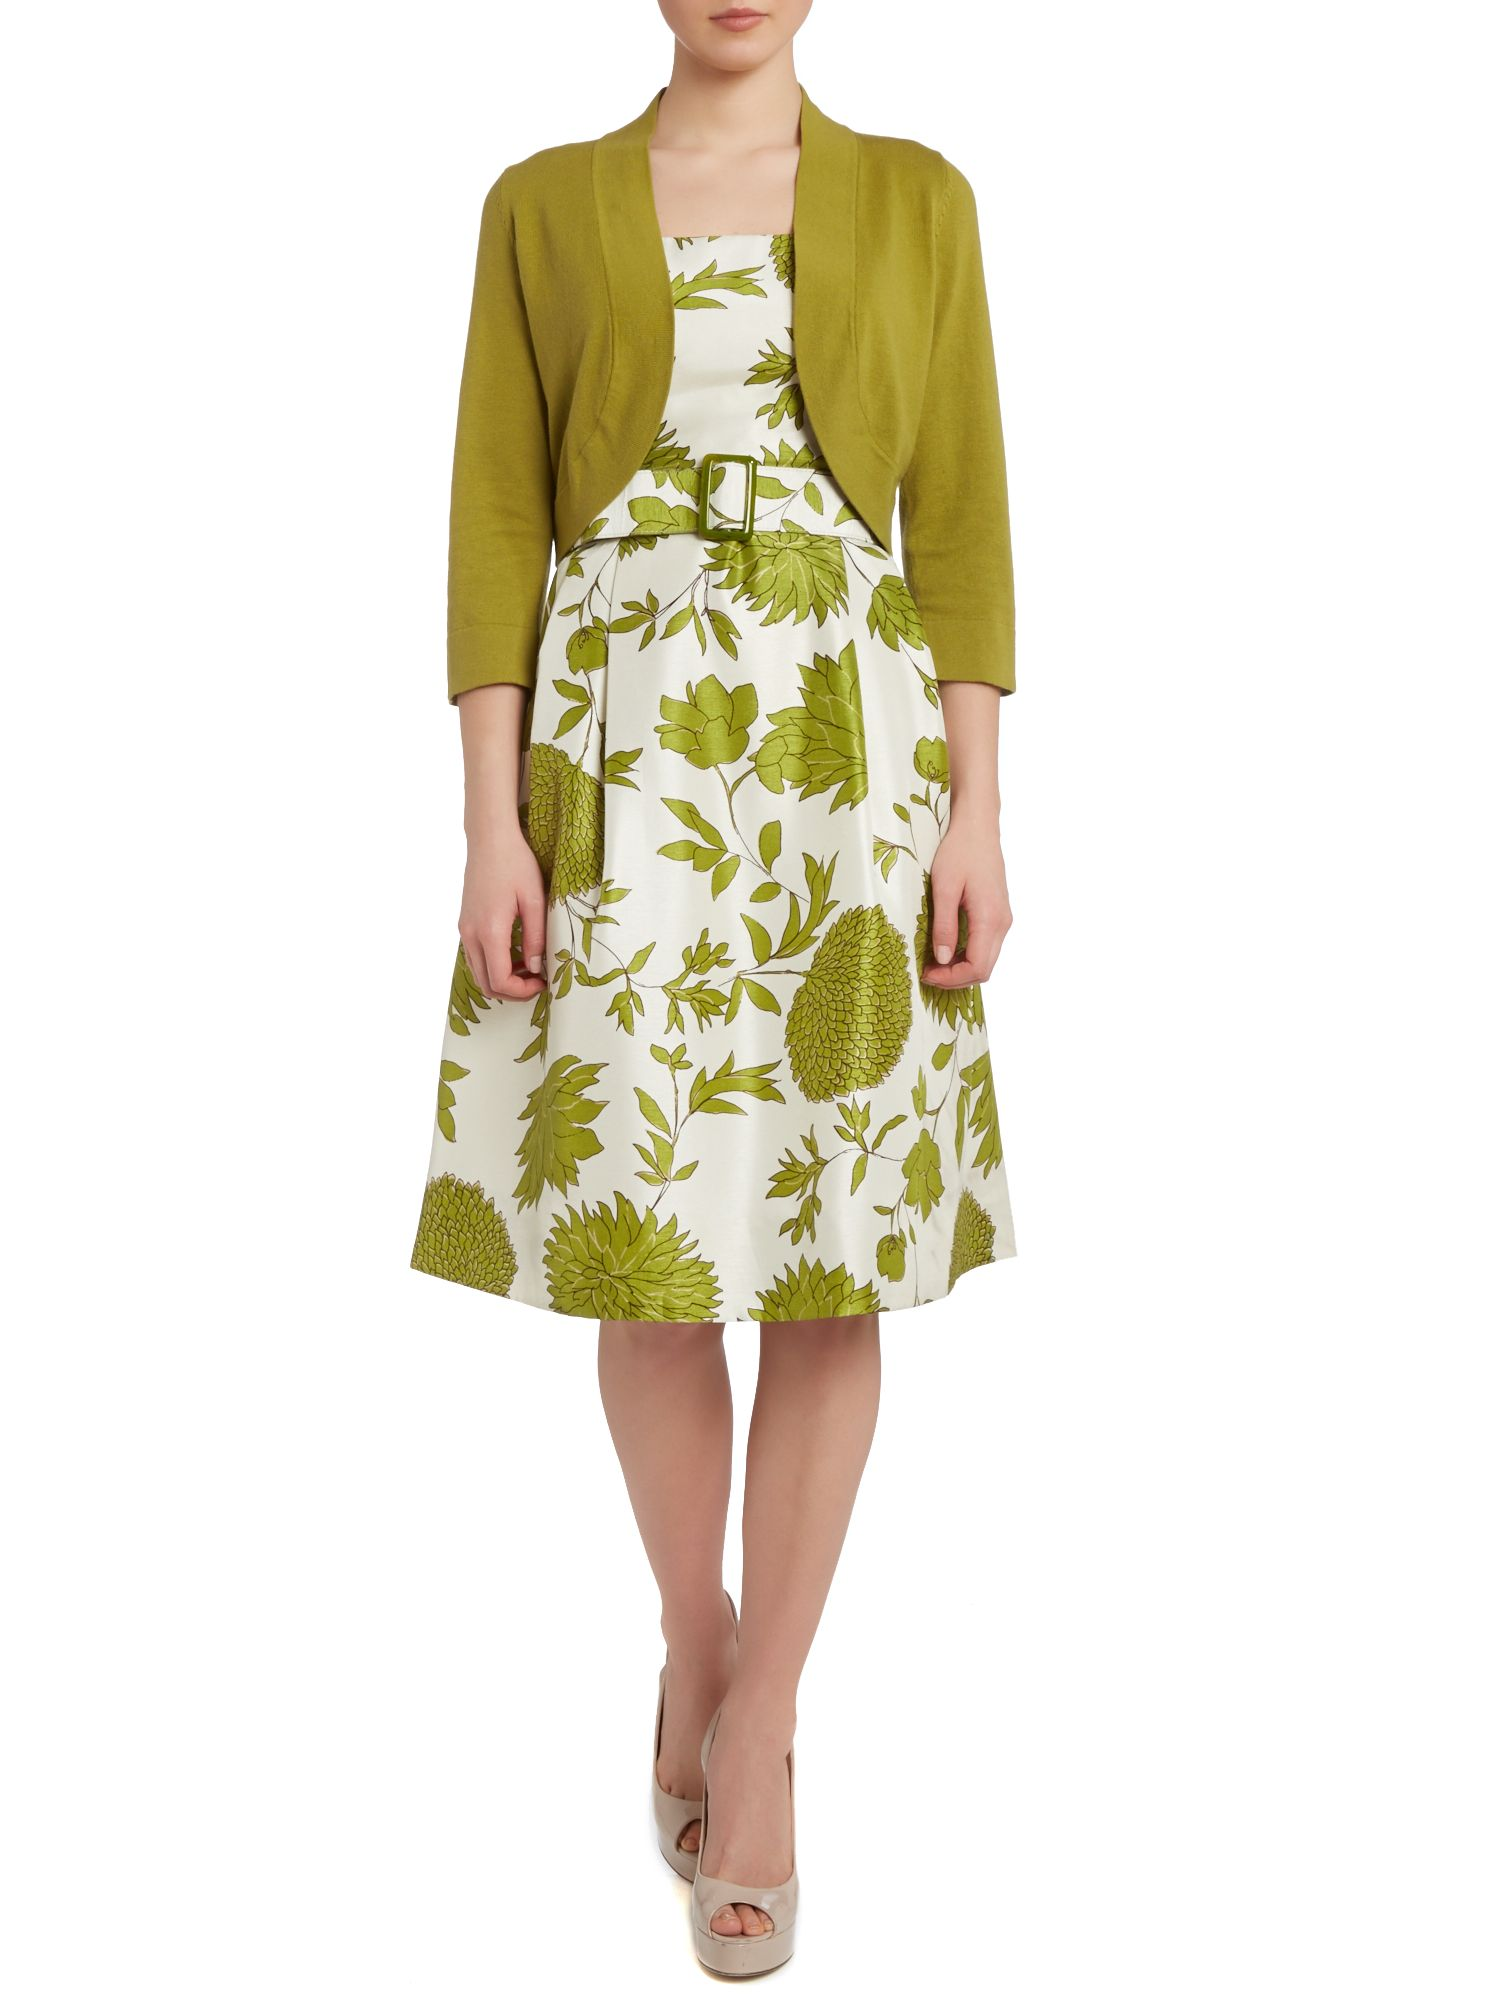 Ladies belted floral dress with cardi